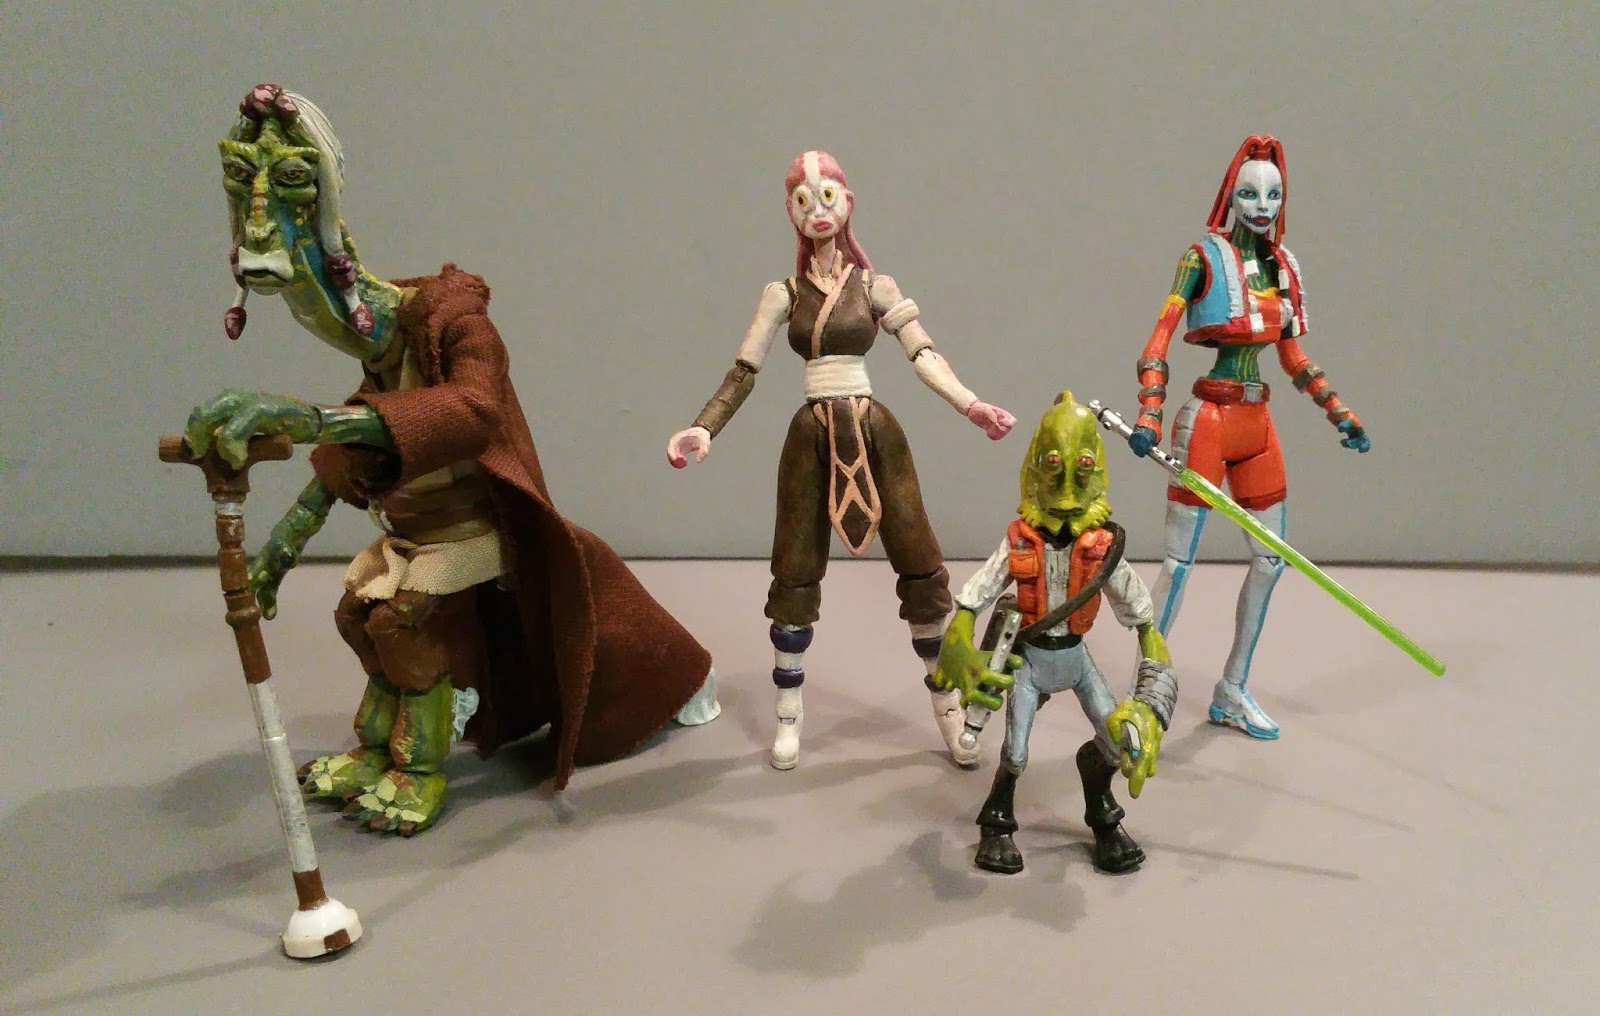 Star Wars The Clone Wars Toys : Star wars customs for the kid quot customizing clone